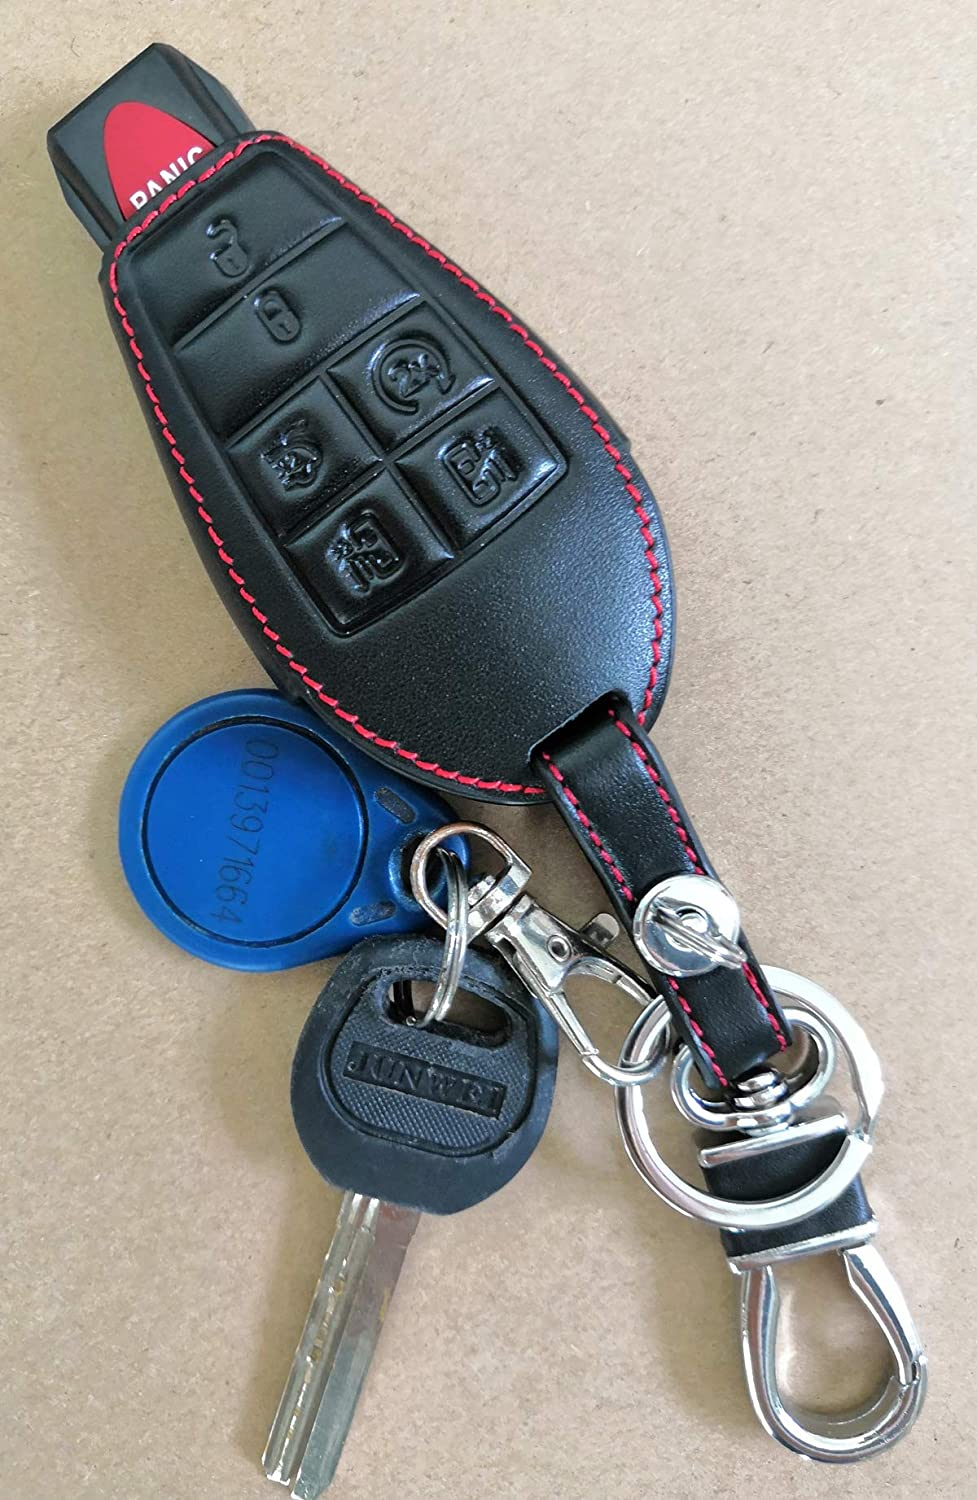 KAWIHEN Keyless Entry Key Fob Leather Cover For Chrysler 300 T/&C Dodge Challenger Charger Durango Grand Caravan Journey Ram 1500-4500 Magnum Jeep Grand Cherokee Commander M3N5WY783X 2701A-C01C IYZ-C01